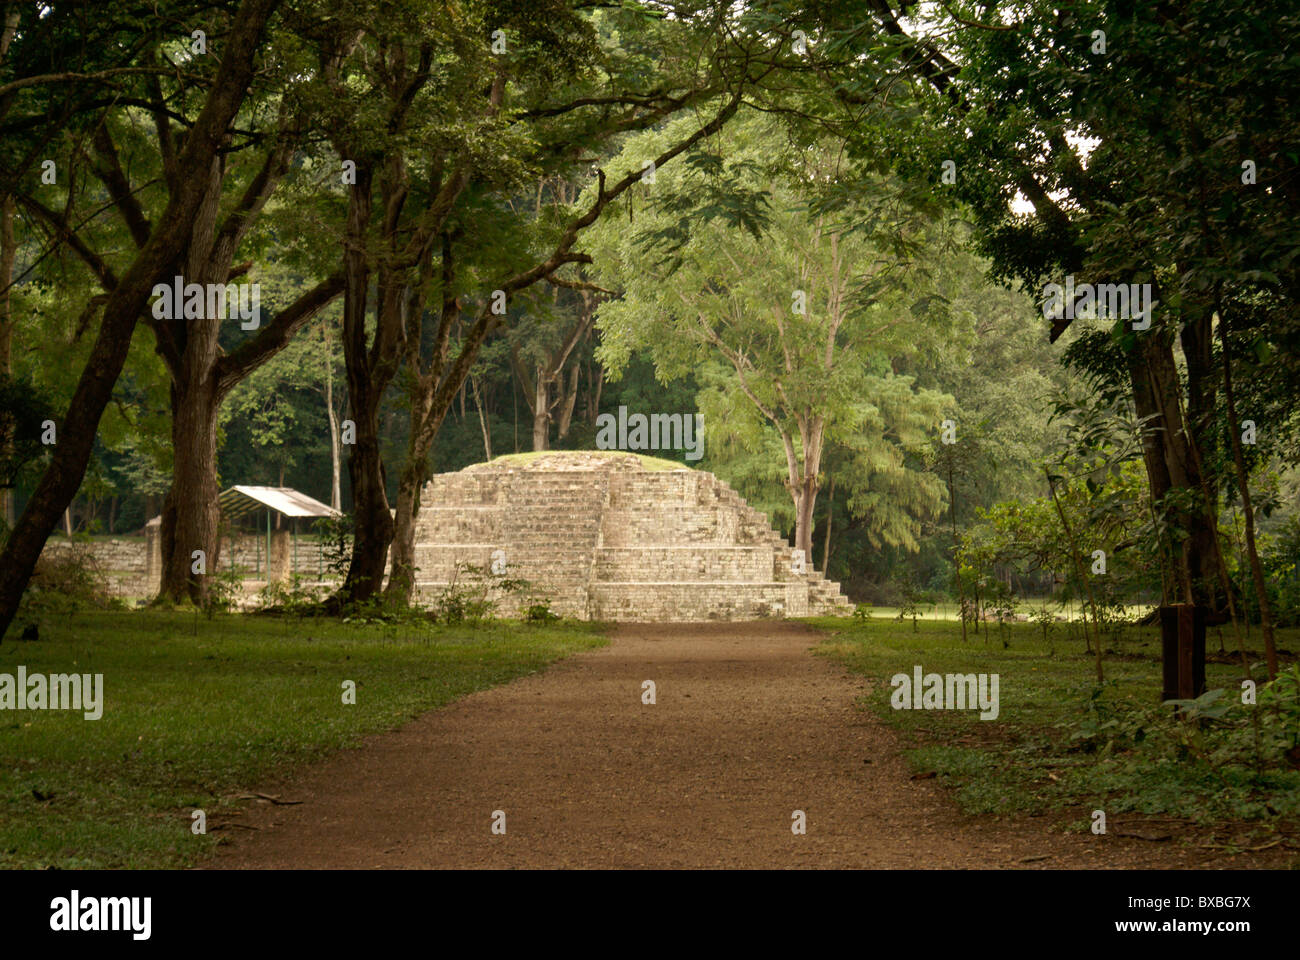 mayan-road-or-sacbe-leading-to-the-ruins